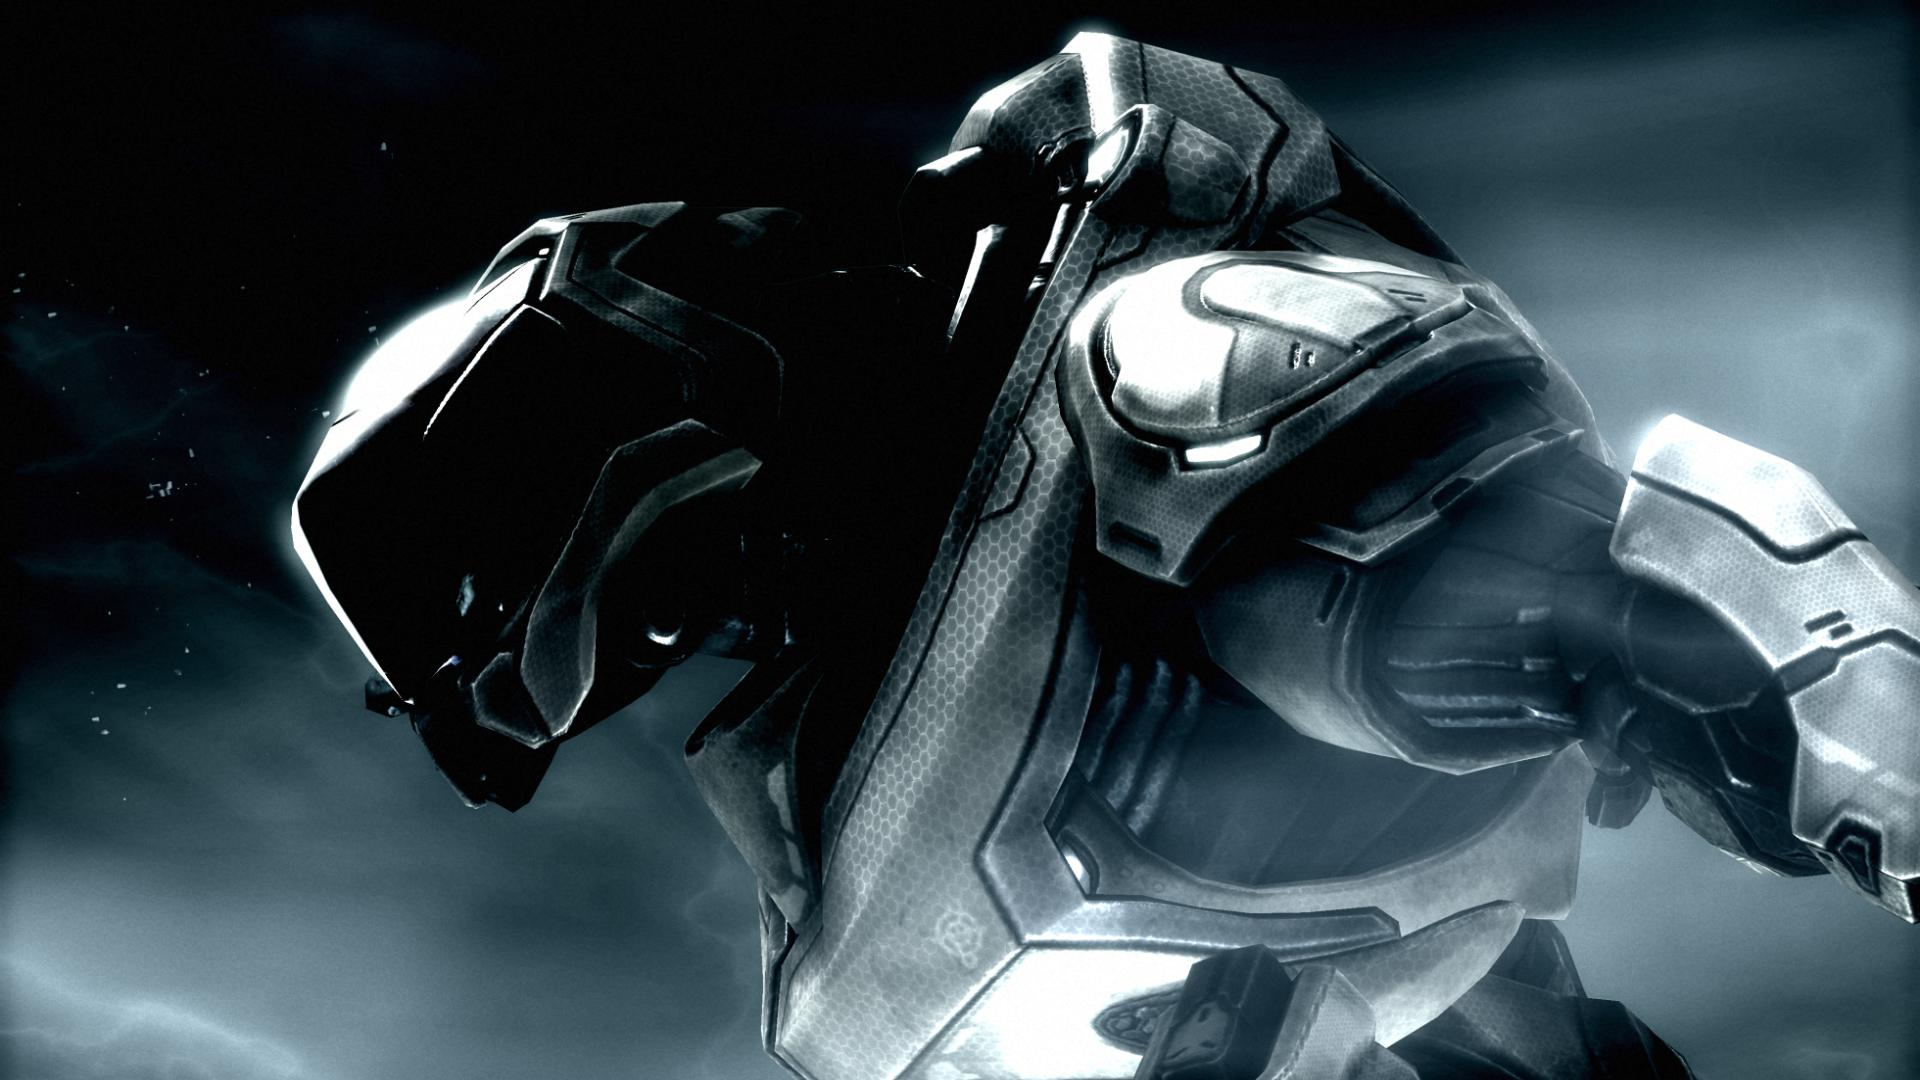 Halo elite Halo Reach Wallpapers 1920x1080